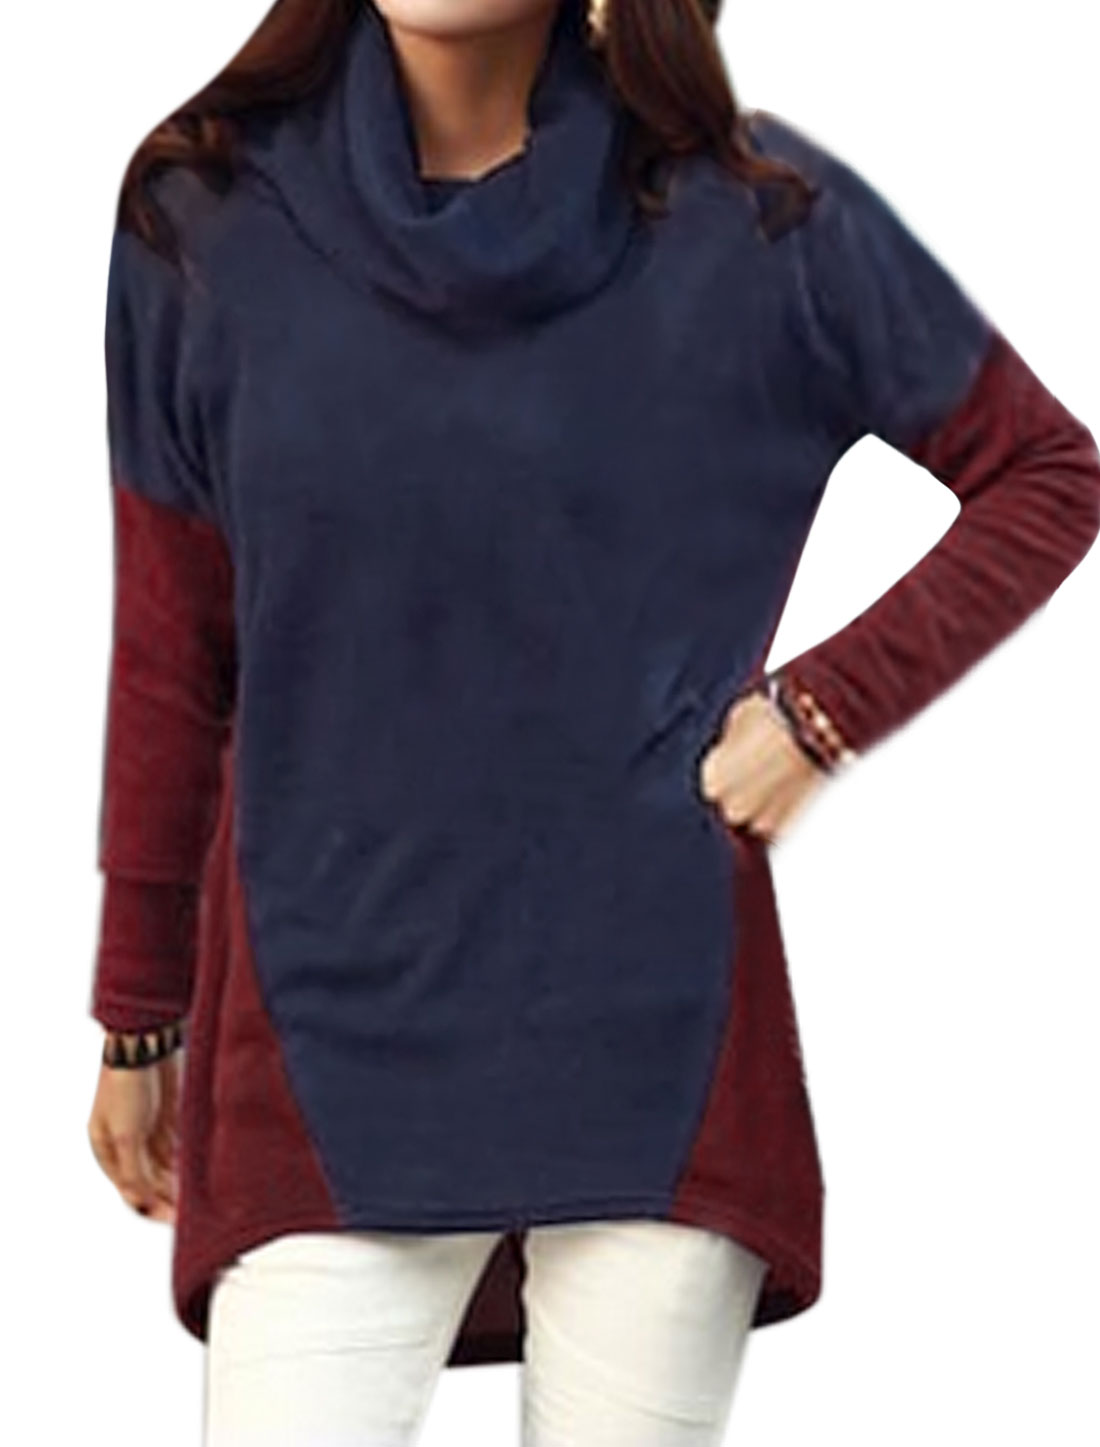 Ladies Cowl Neck Dolman Sleeves Contrast Color High Low Hem Tunic Top Blue Red S